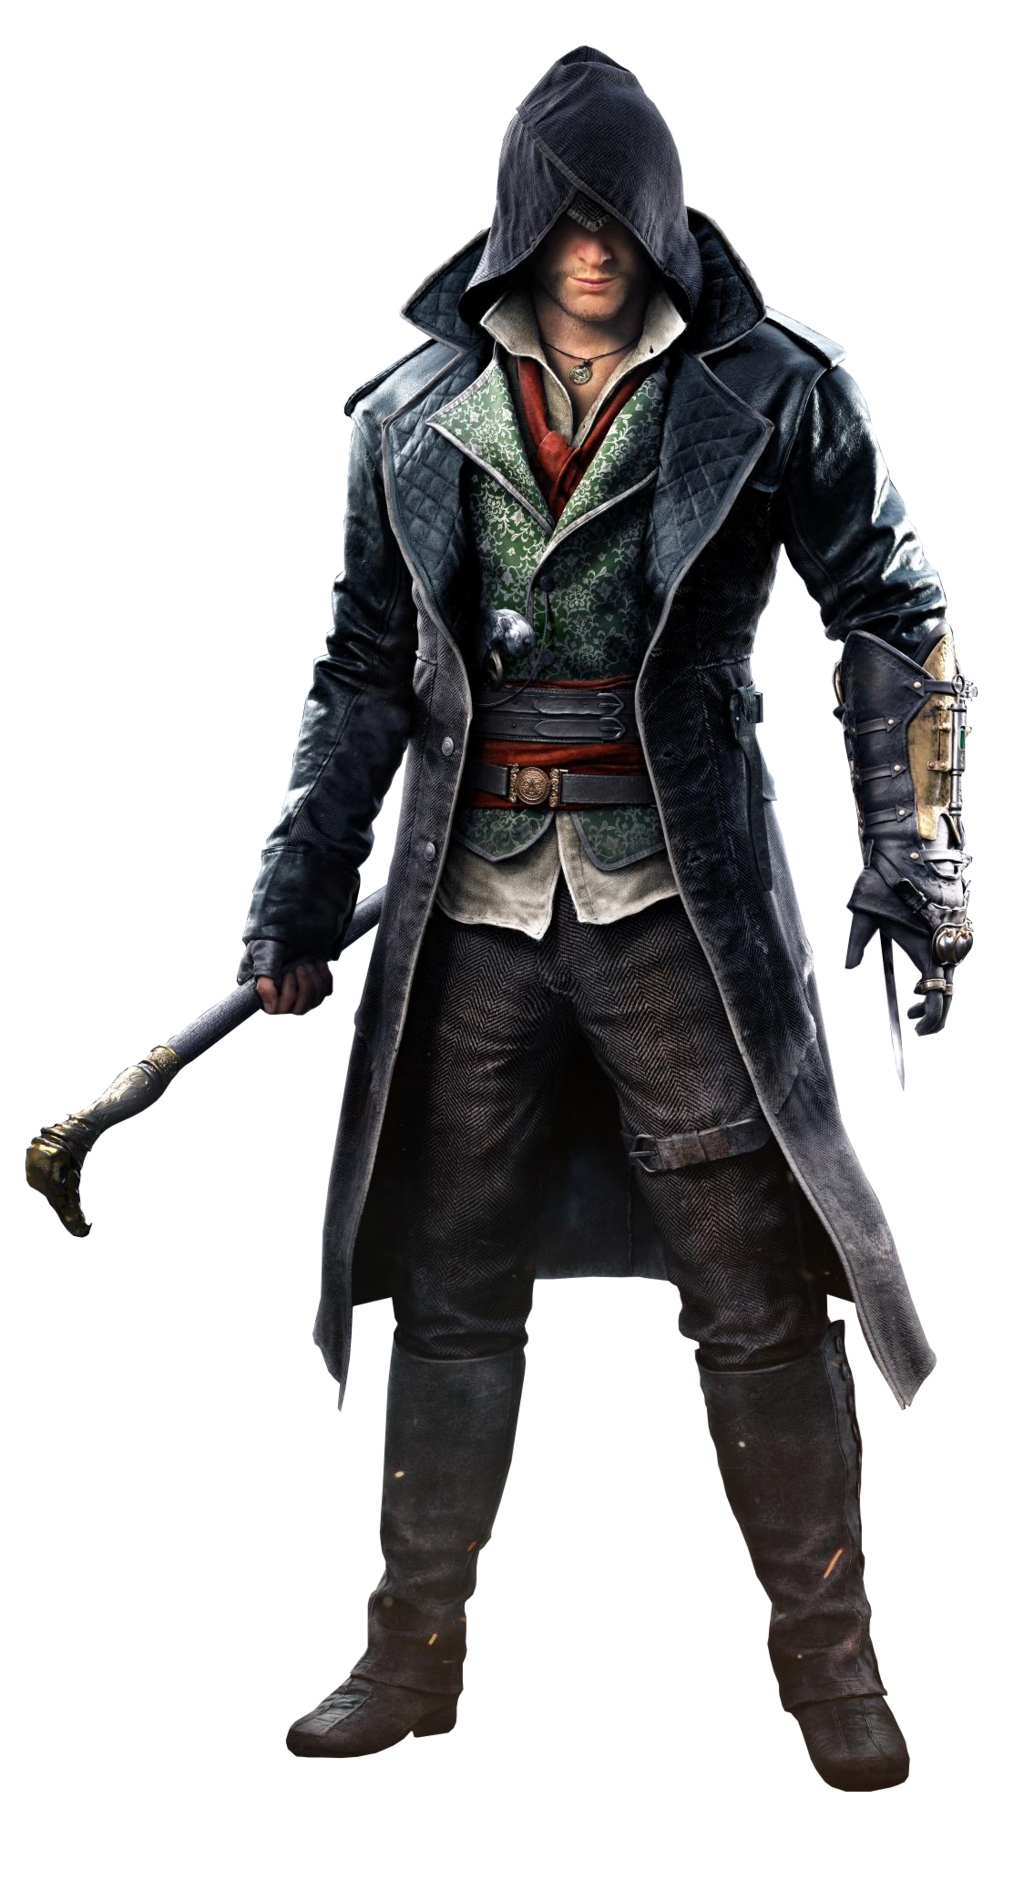 Assassin Creed Syndicate Transparent PNG Image